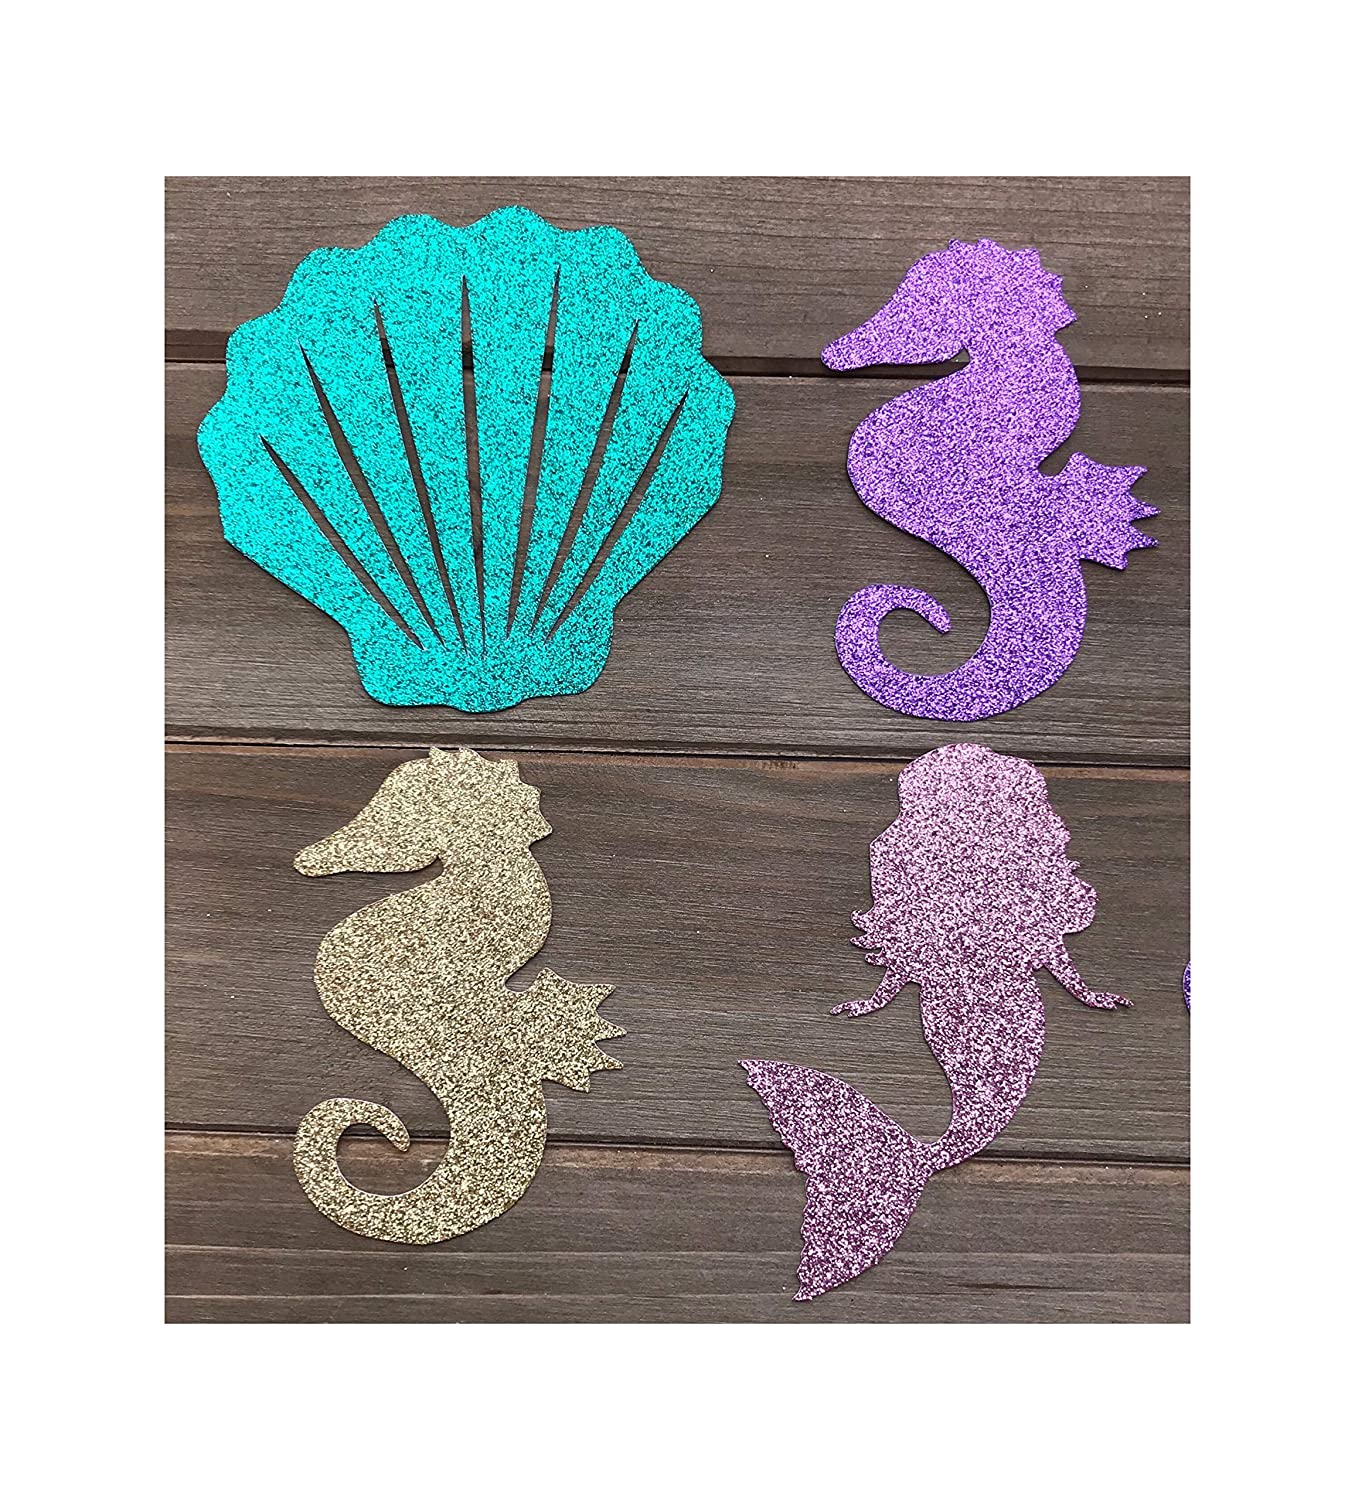 Candy Bags//DIY Under The Sea cut outs 10CT